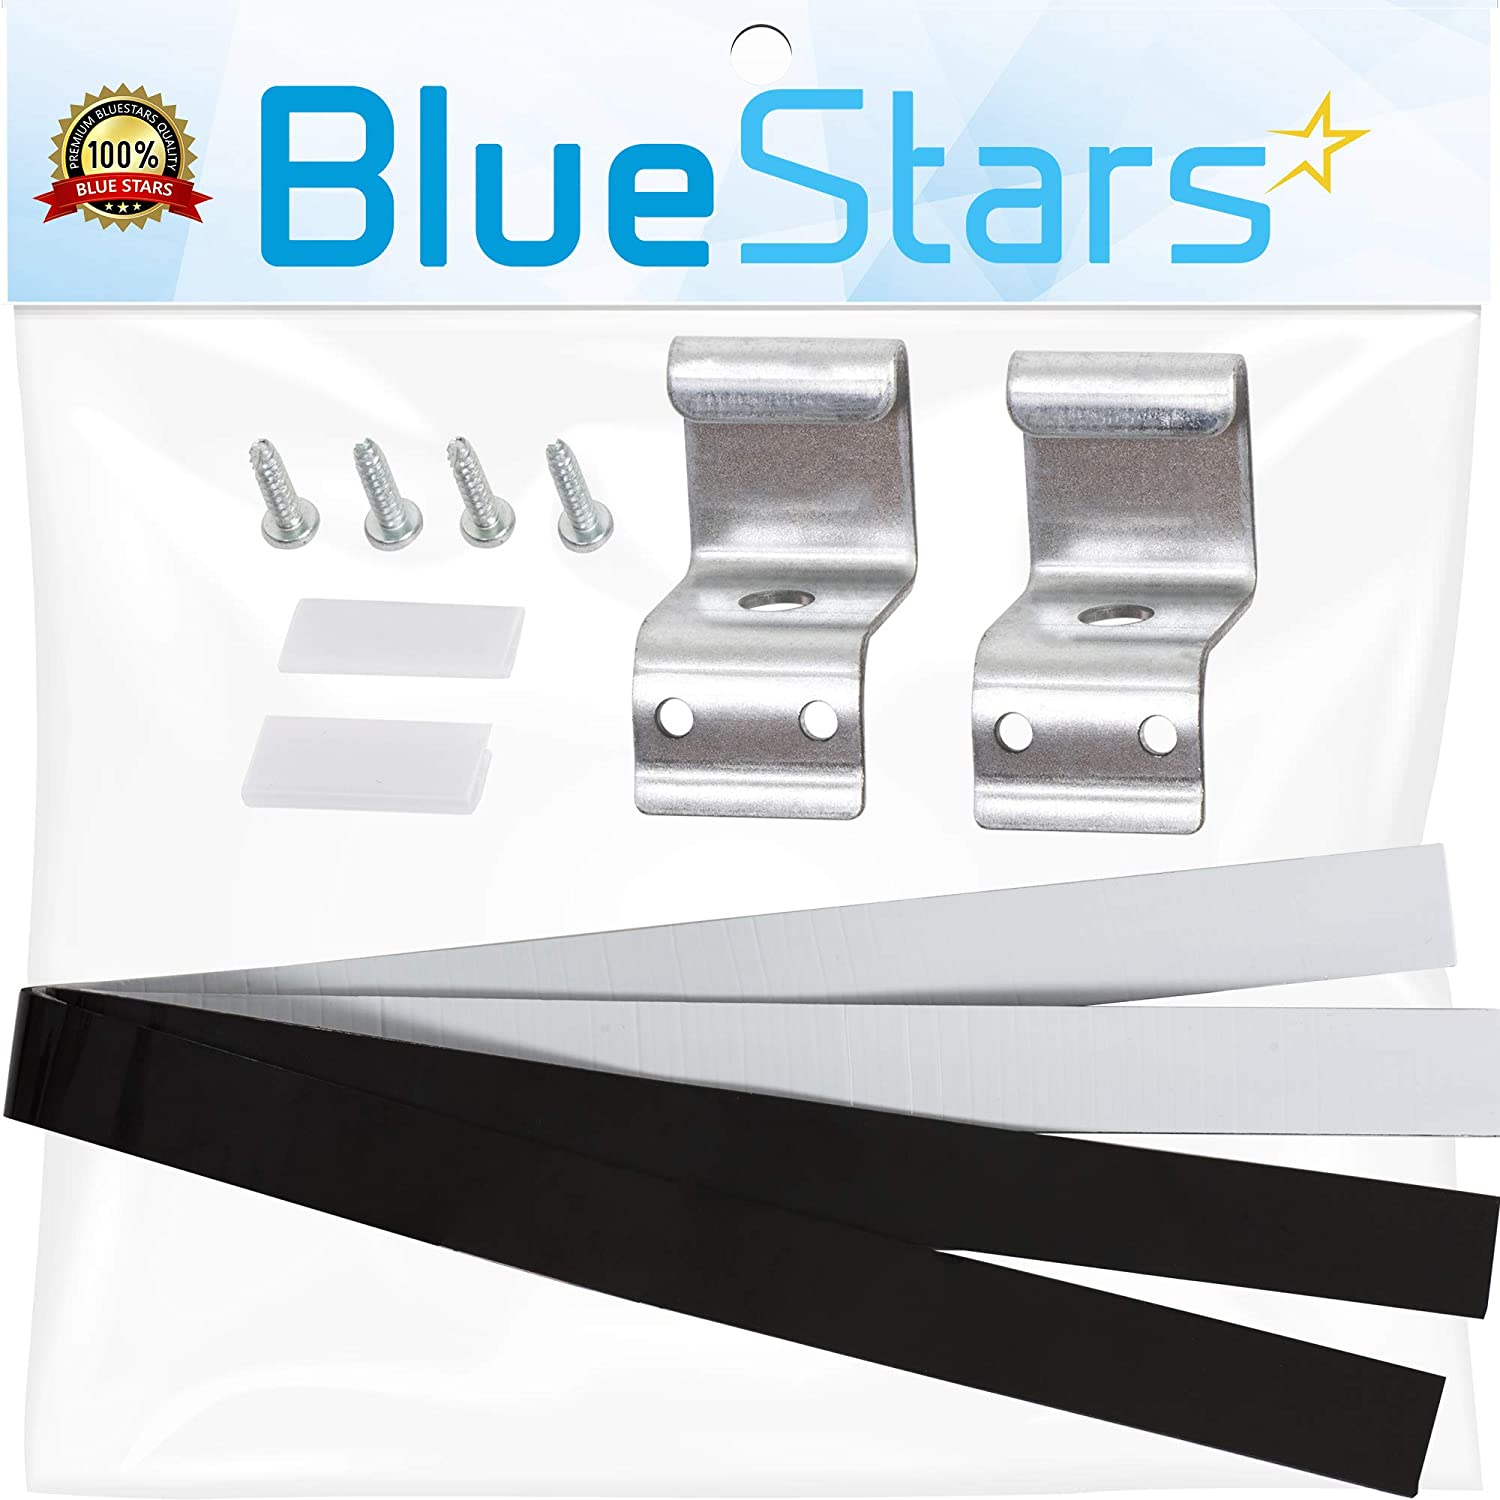 Ultra Durable 8541503 Duet and Epic Stack Kit Replacement by Blue Stars – Exact Fit For Whirlpool & Kenmore Dryers/Washers - Replaces 8212640 AP3183011